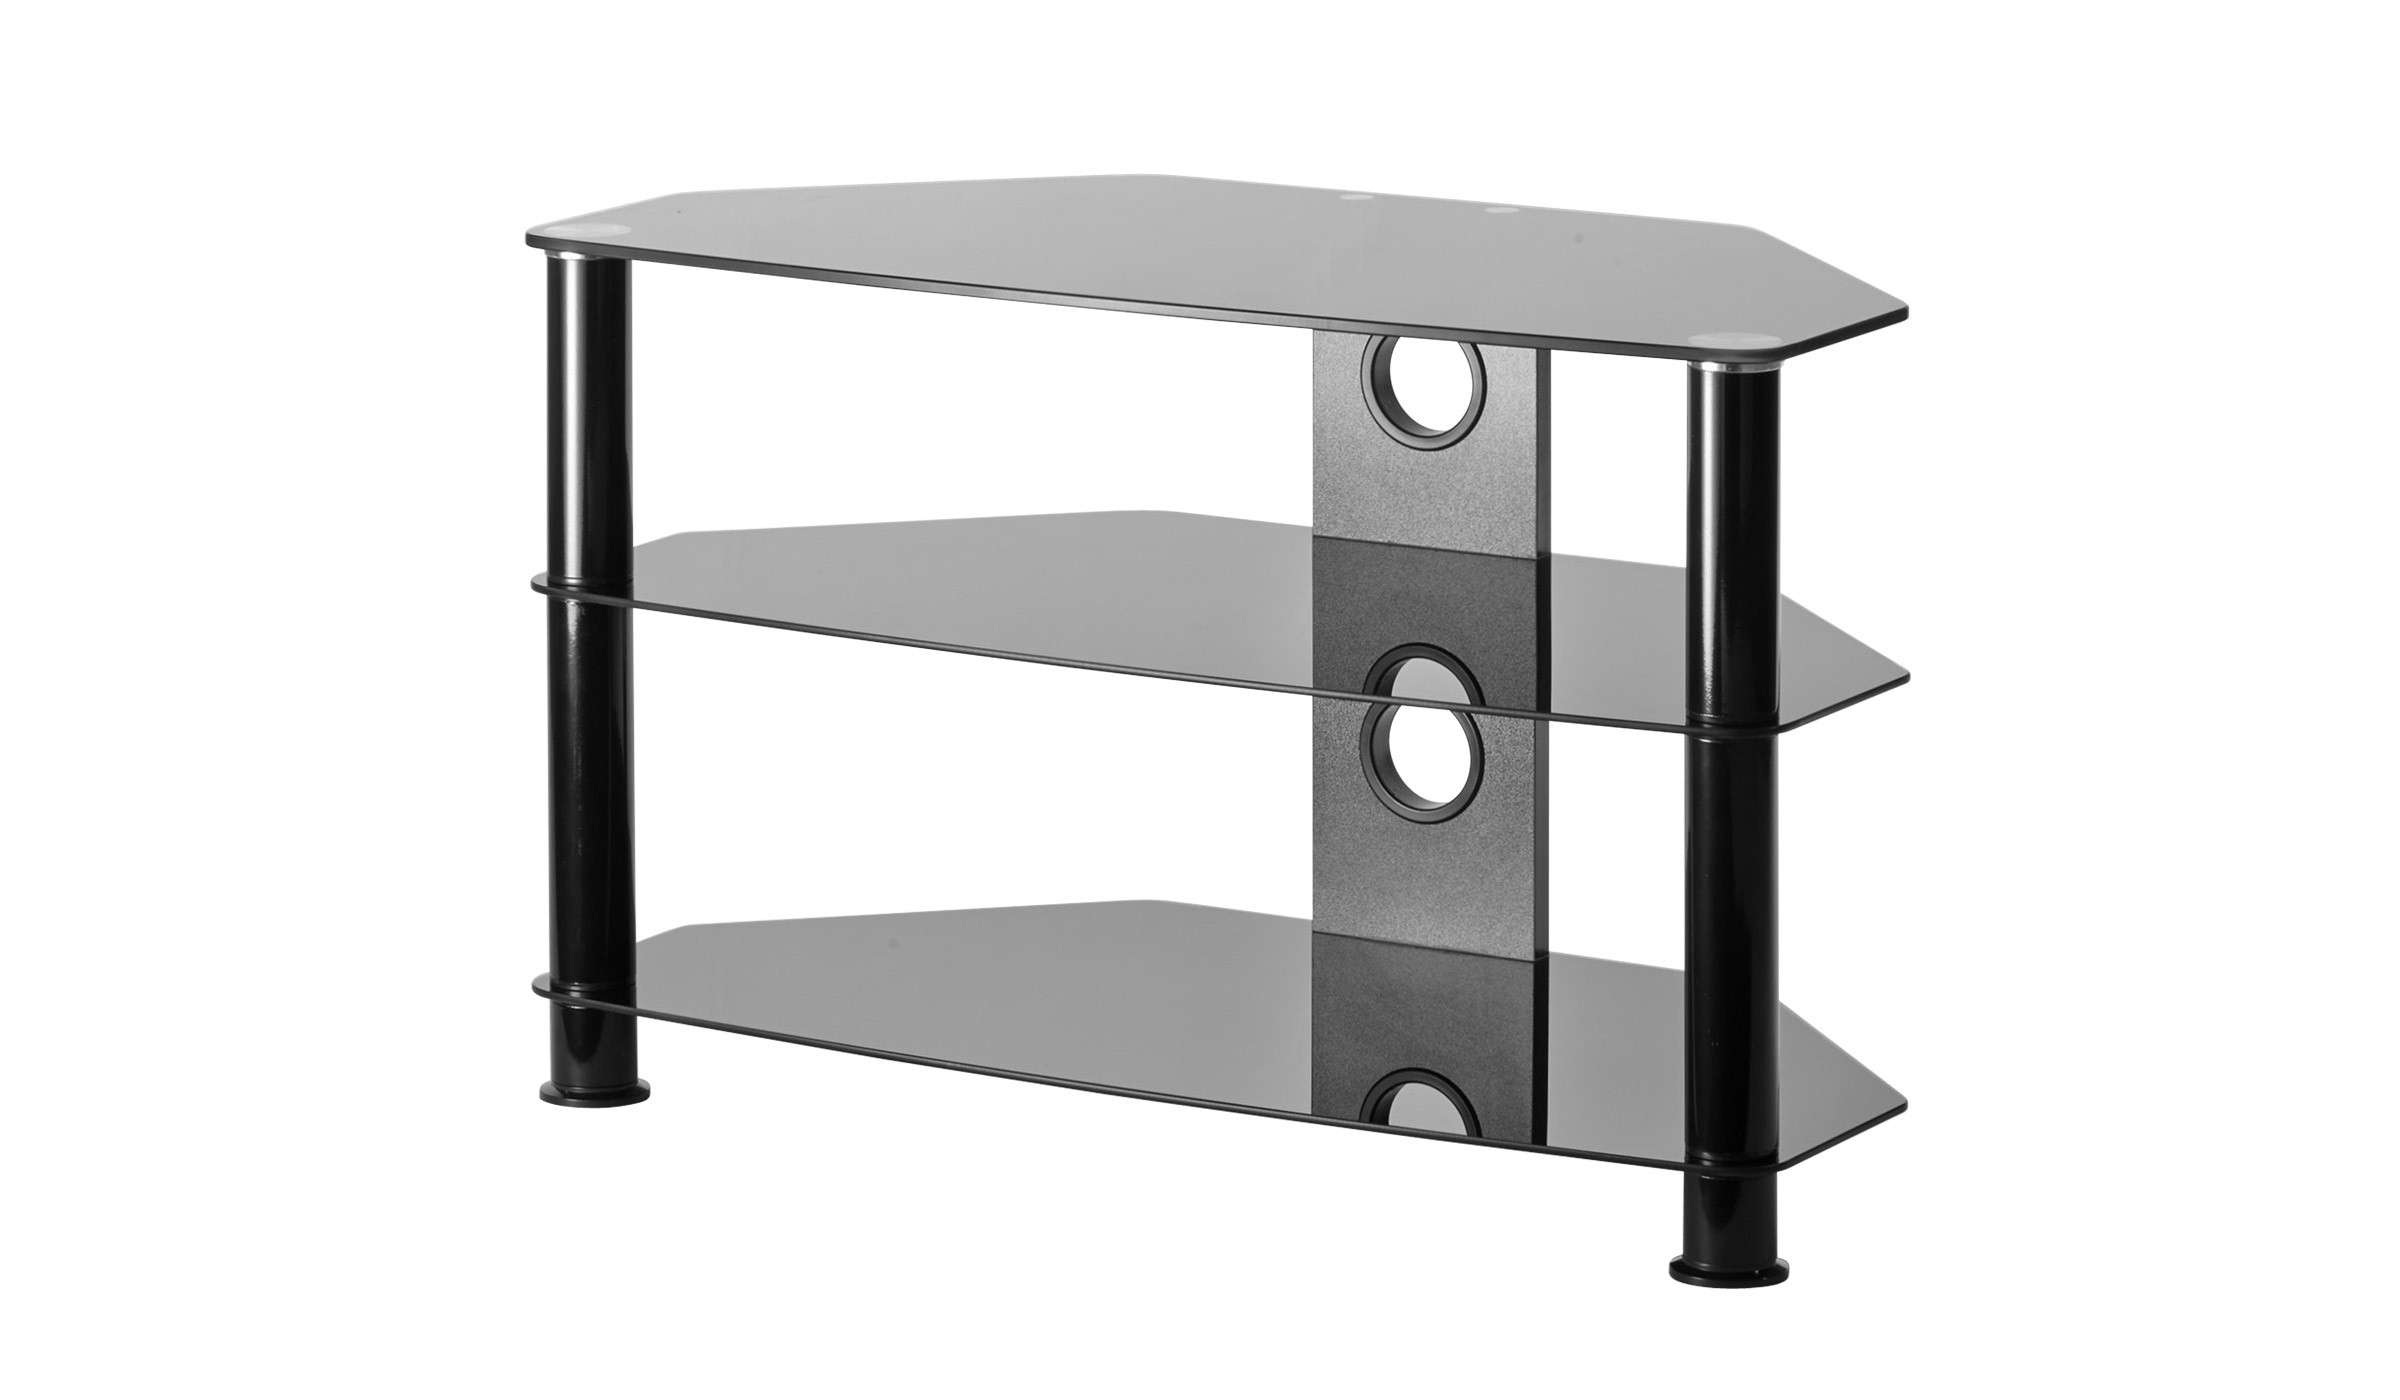 Black Glass Corner Tv Stand Up To 37 Inch Tv | Mmt Db800 For 32 Inch Corner Tv Stands (View 2 of 15)